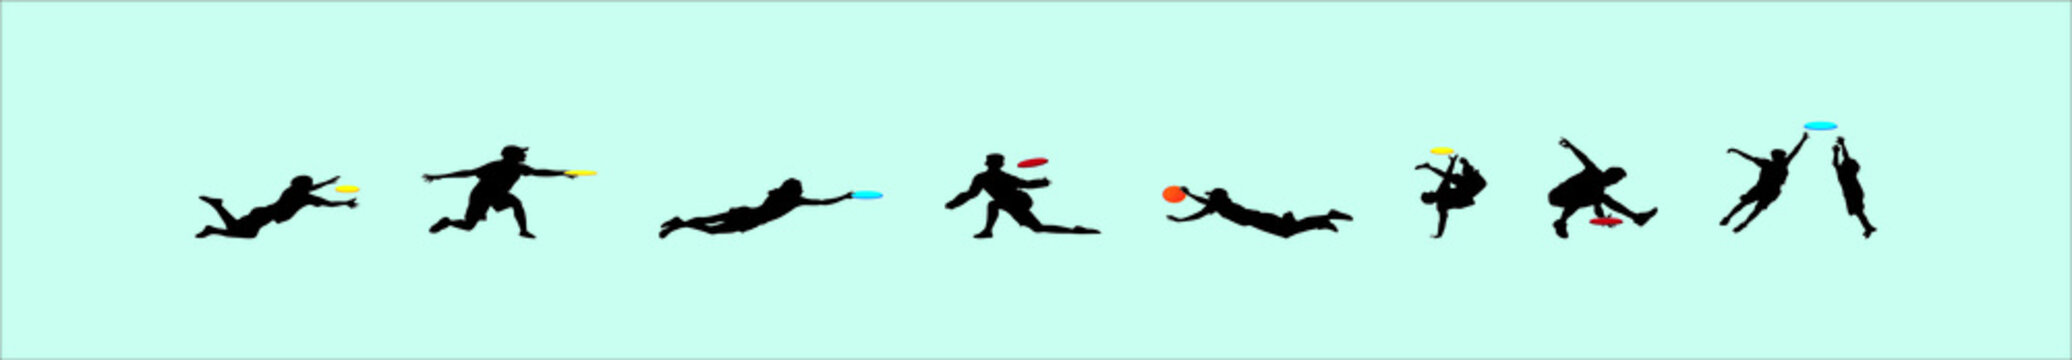 Man playing outdoor beach game vector silhouette illustration isolated on white background. Throwing flying disk. catch game toy. Frisbee sport.